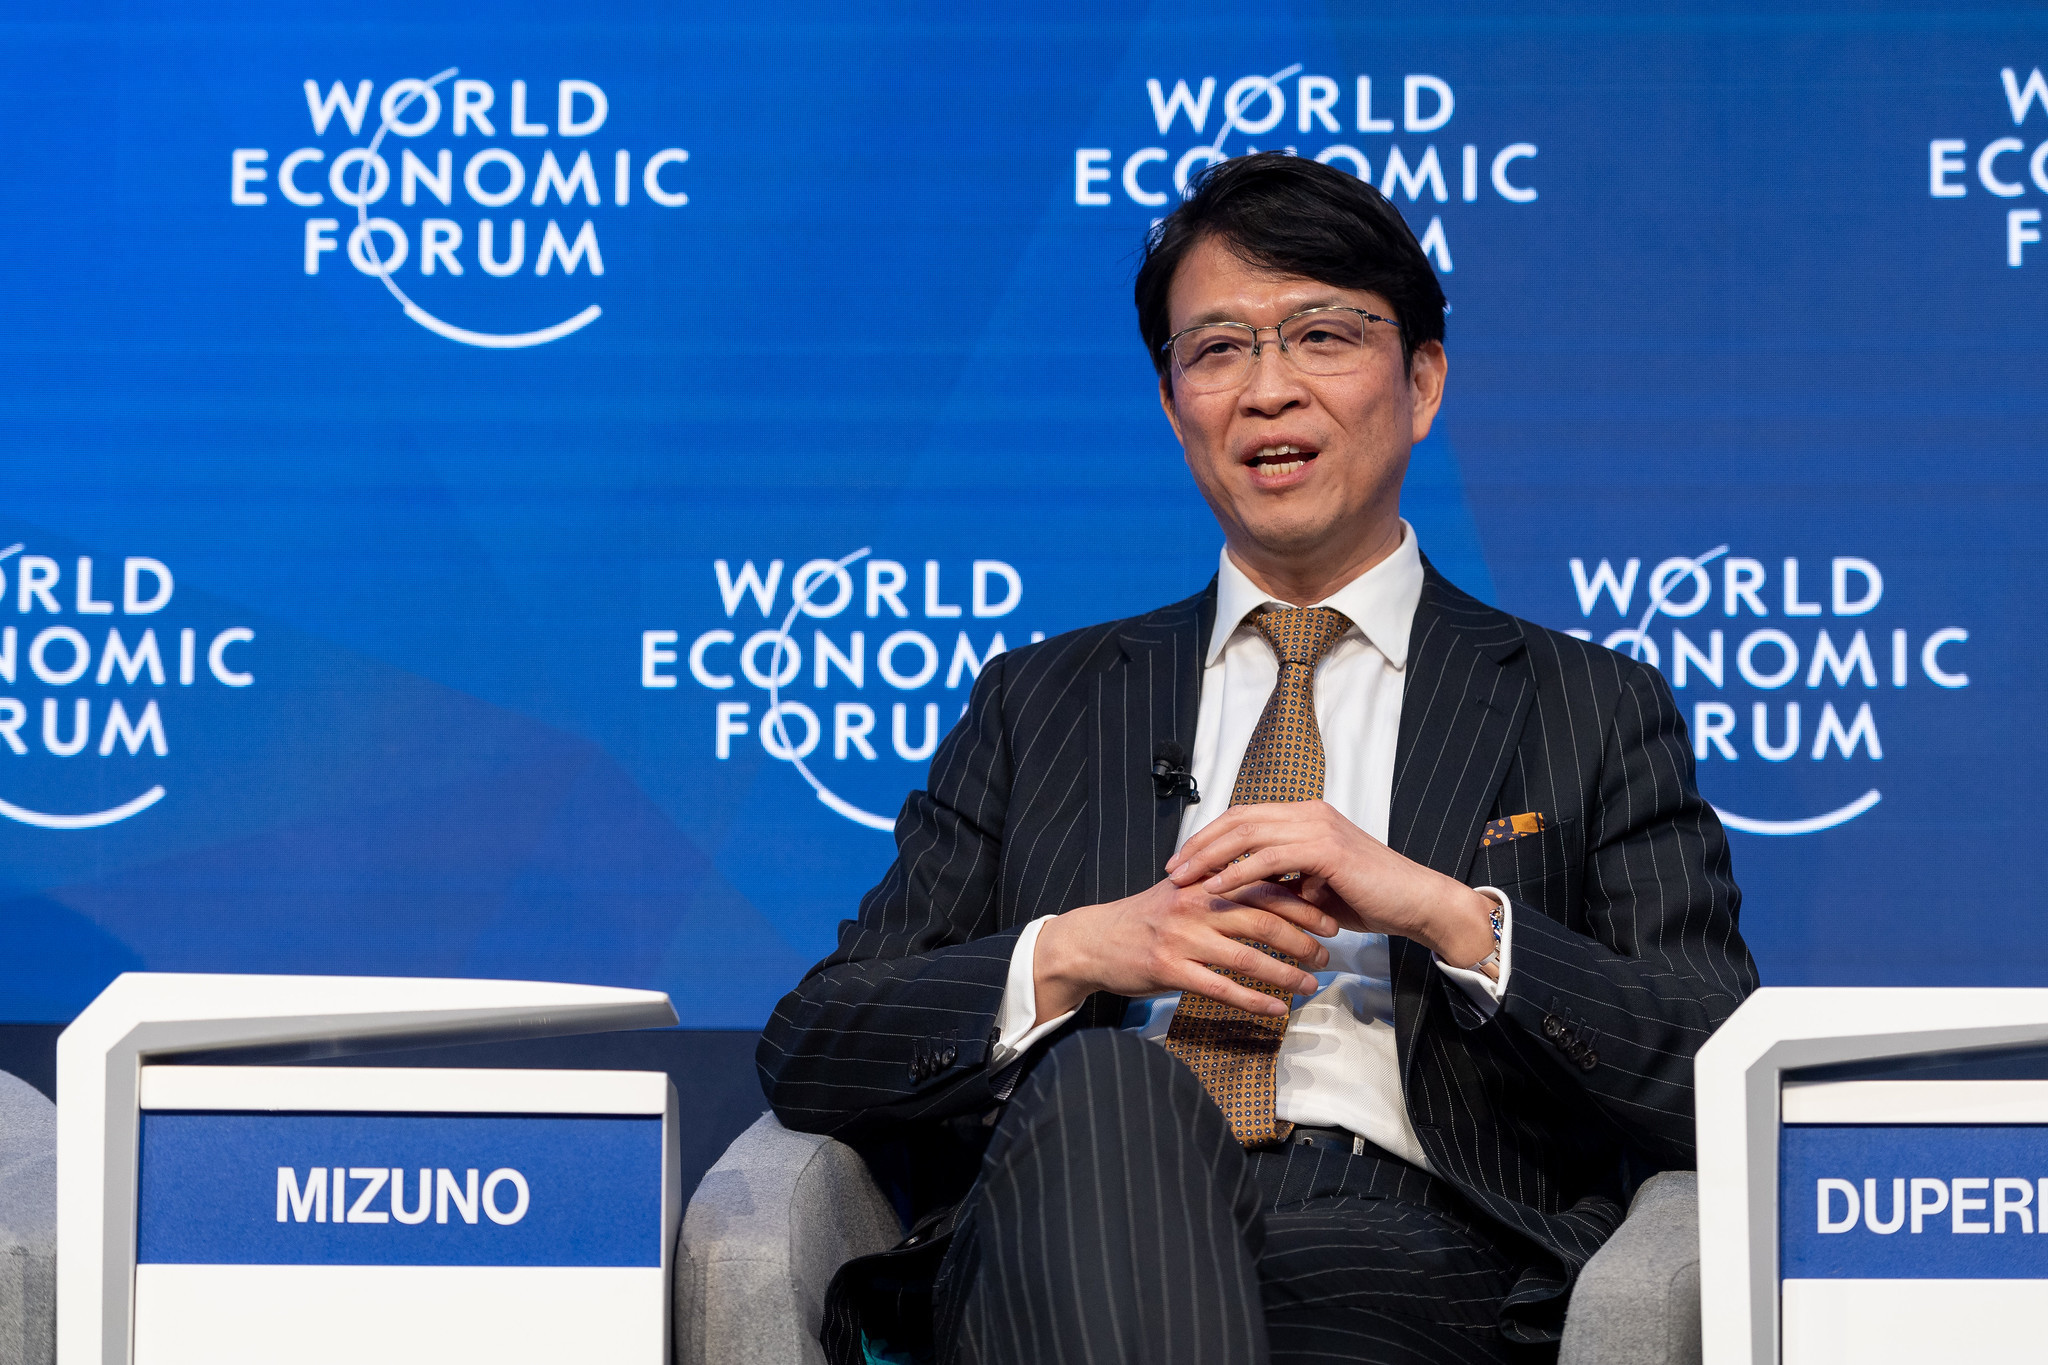 Hiromichi Mizuno, Executive Managing Director and Chief Investment Officer, Government Pension Investment Fund (GPIF), Japan, speaking in the Stakeholder Capitalism: How to Enable Long-Term Investing session at the World Economic Forum Annual Meeting 2020 in Davos-Klosters, Switzerland, 21 January. Congress Centre – Aspen 2. Copyright by World Economic Forum/Sandra Blaser